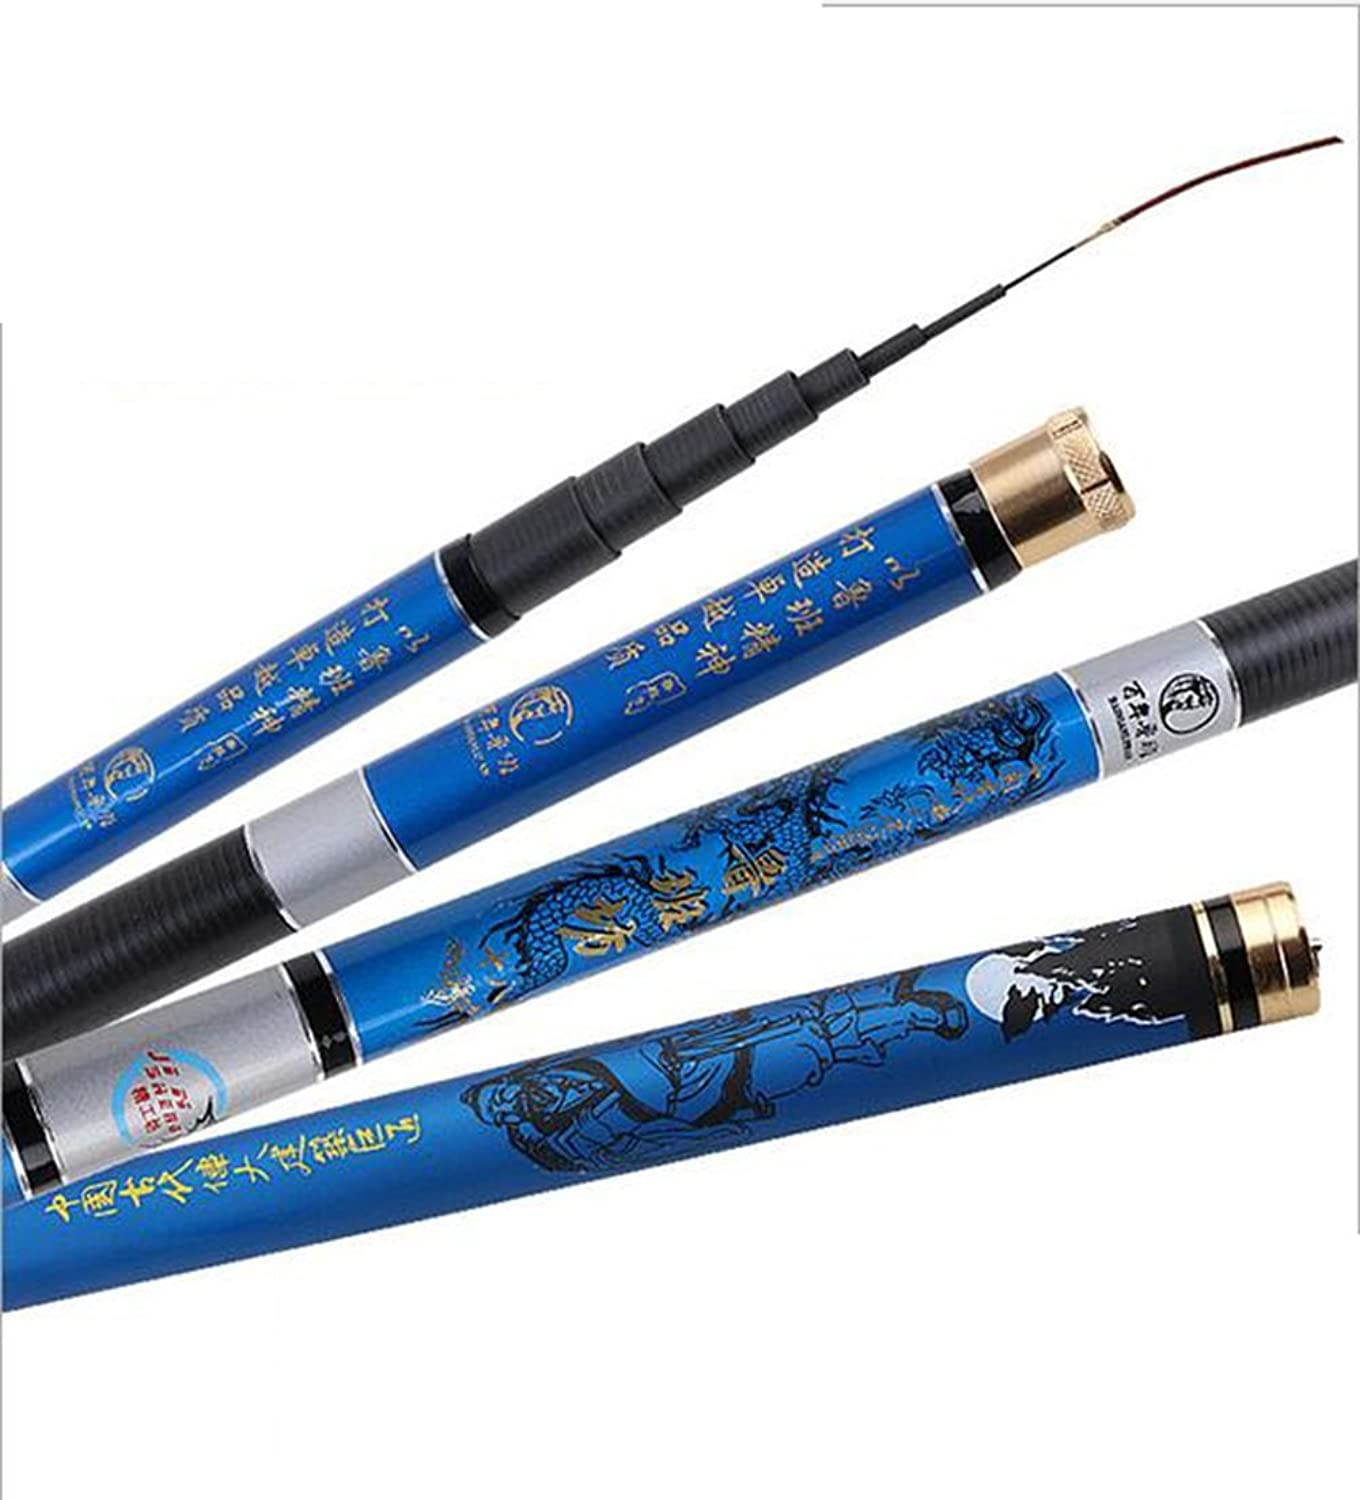 Portable Superhard Stream Fishing Rod High Carbon Material River Stream Reservoir Lake, Contraction Length 72 cm